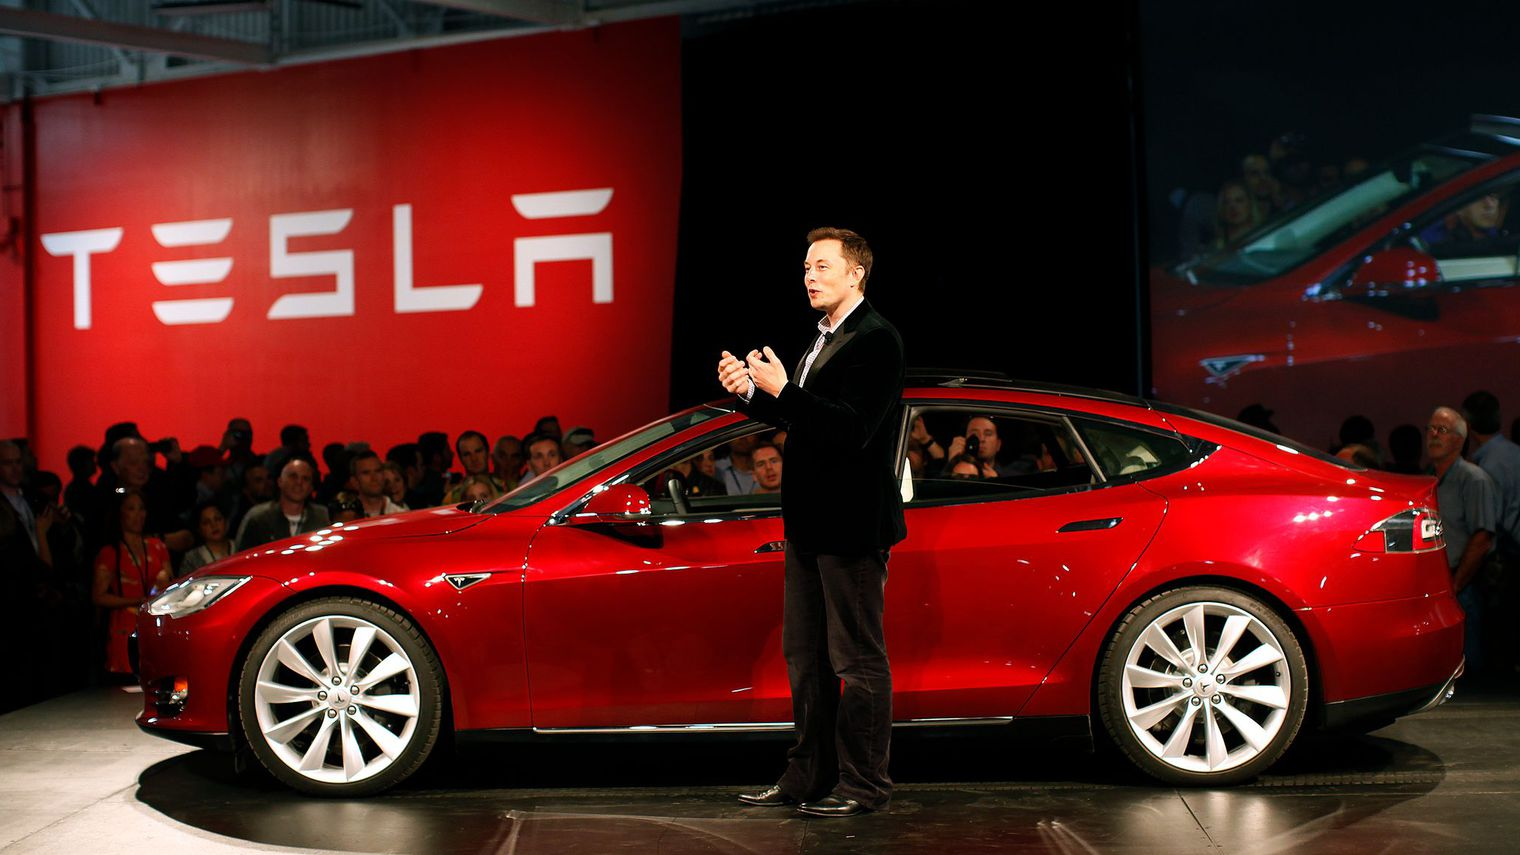 tesla-motors-ceo-elon-musk-speaks-during-the-model-s-beta-event-held-at-the-tesla-factory-in-fremont_5457442